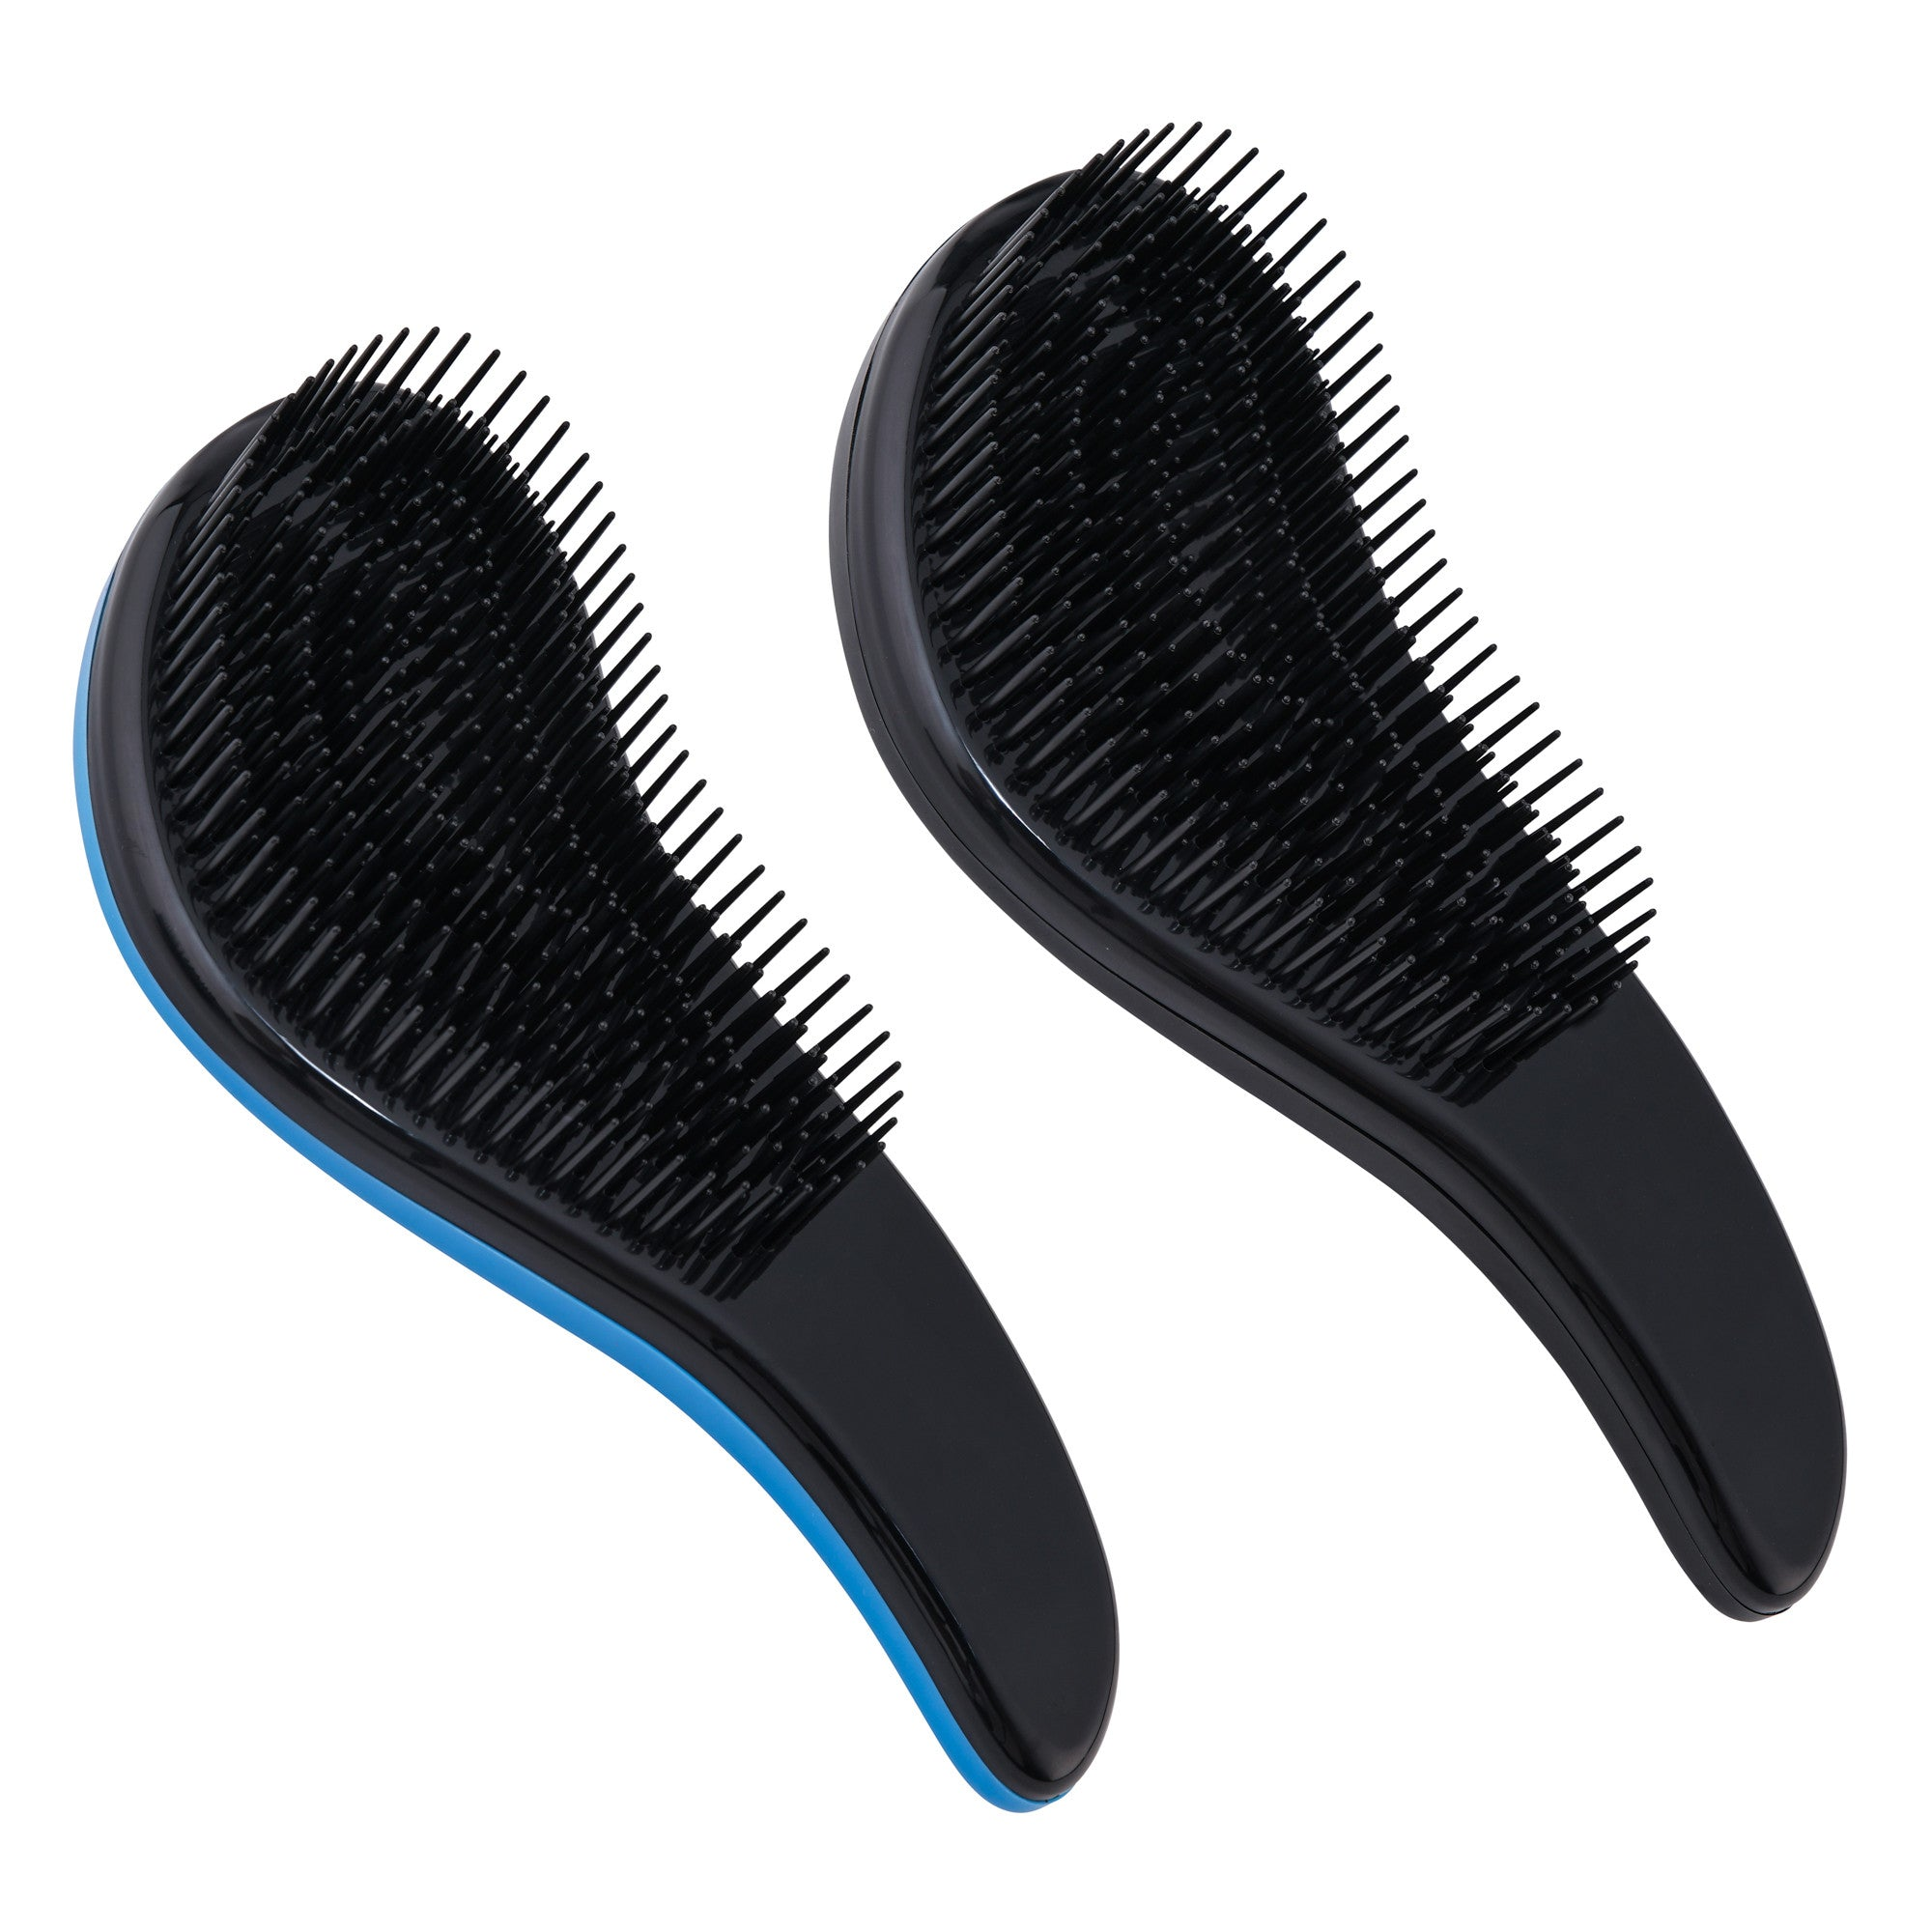 Purest Naturals Detangling Hair Brush Set (2 Brushes)